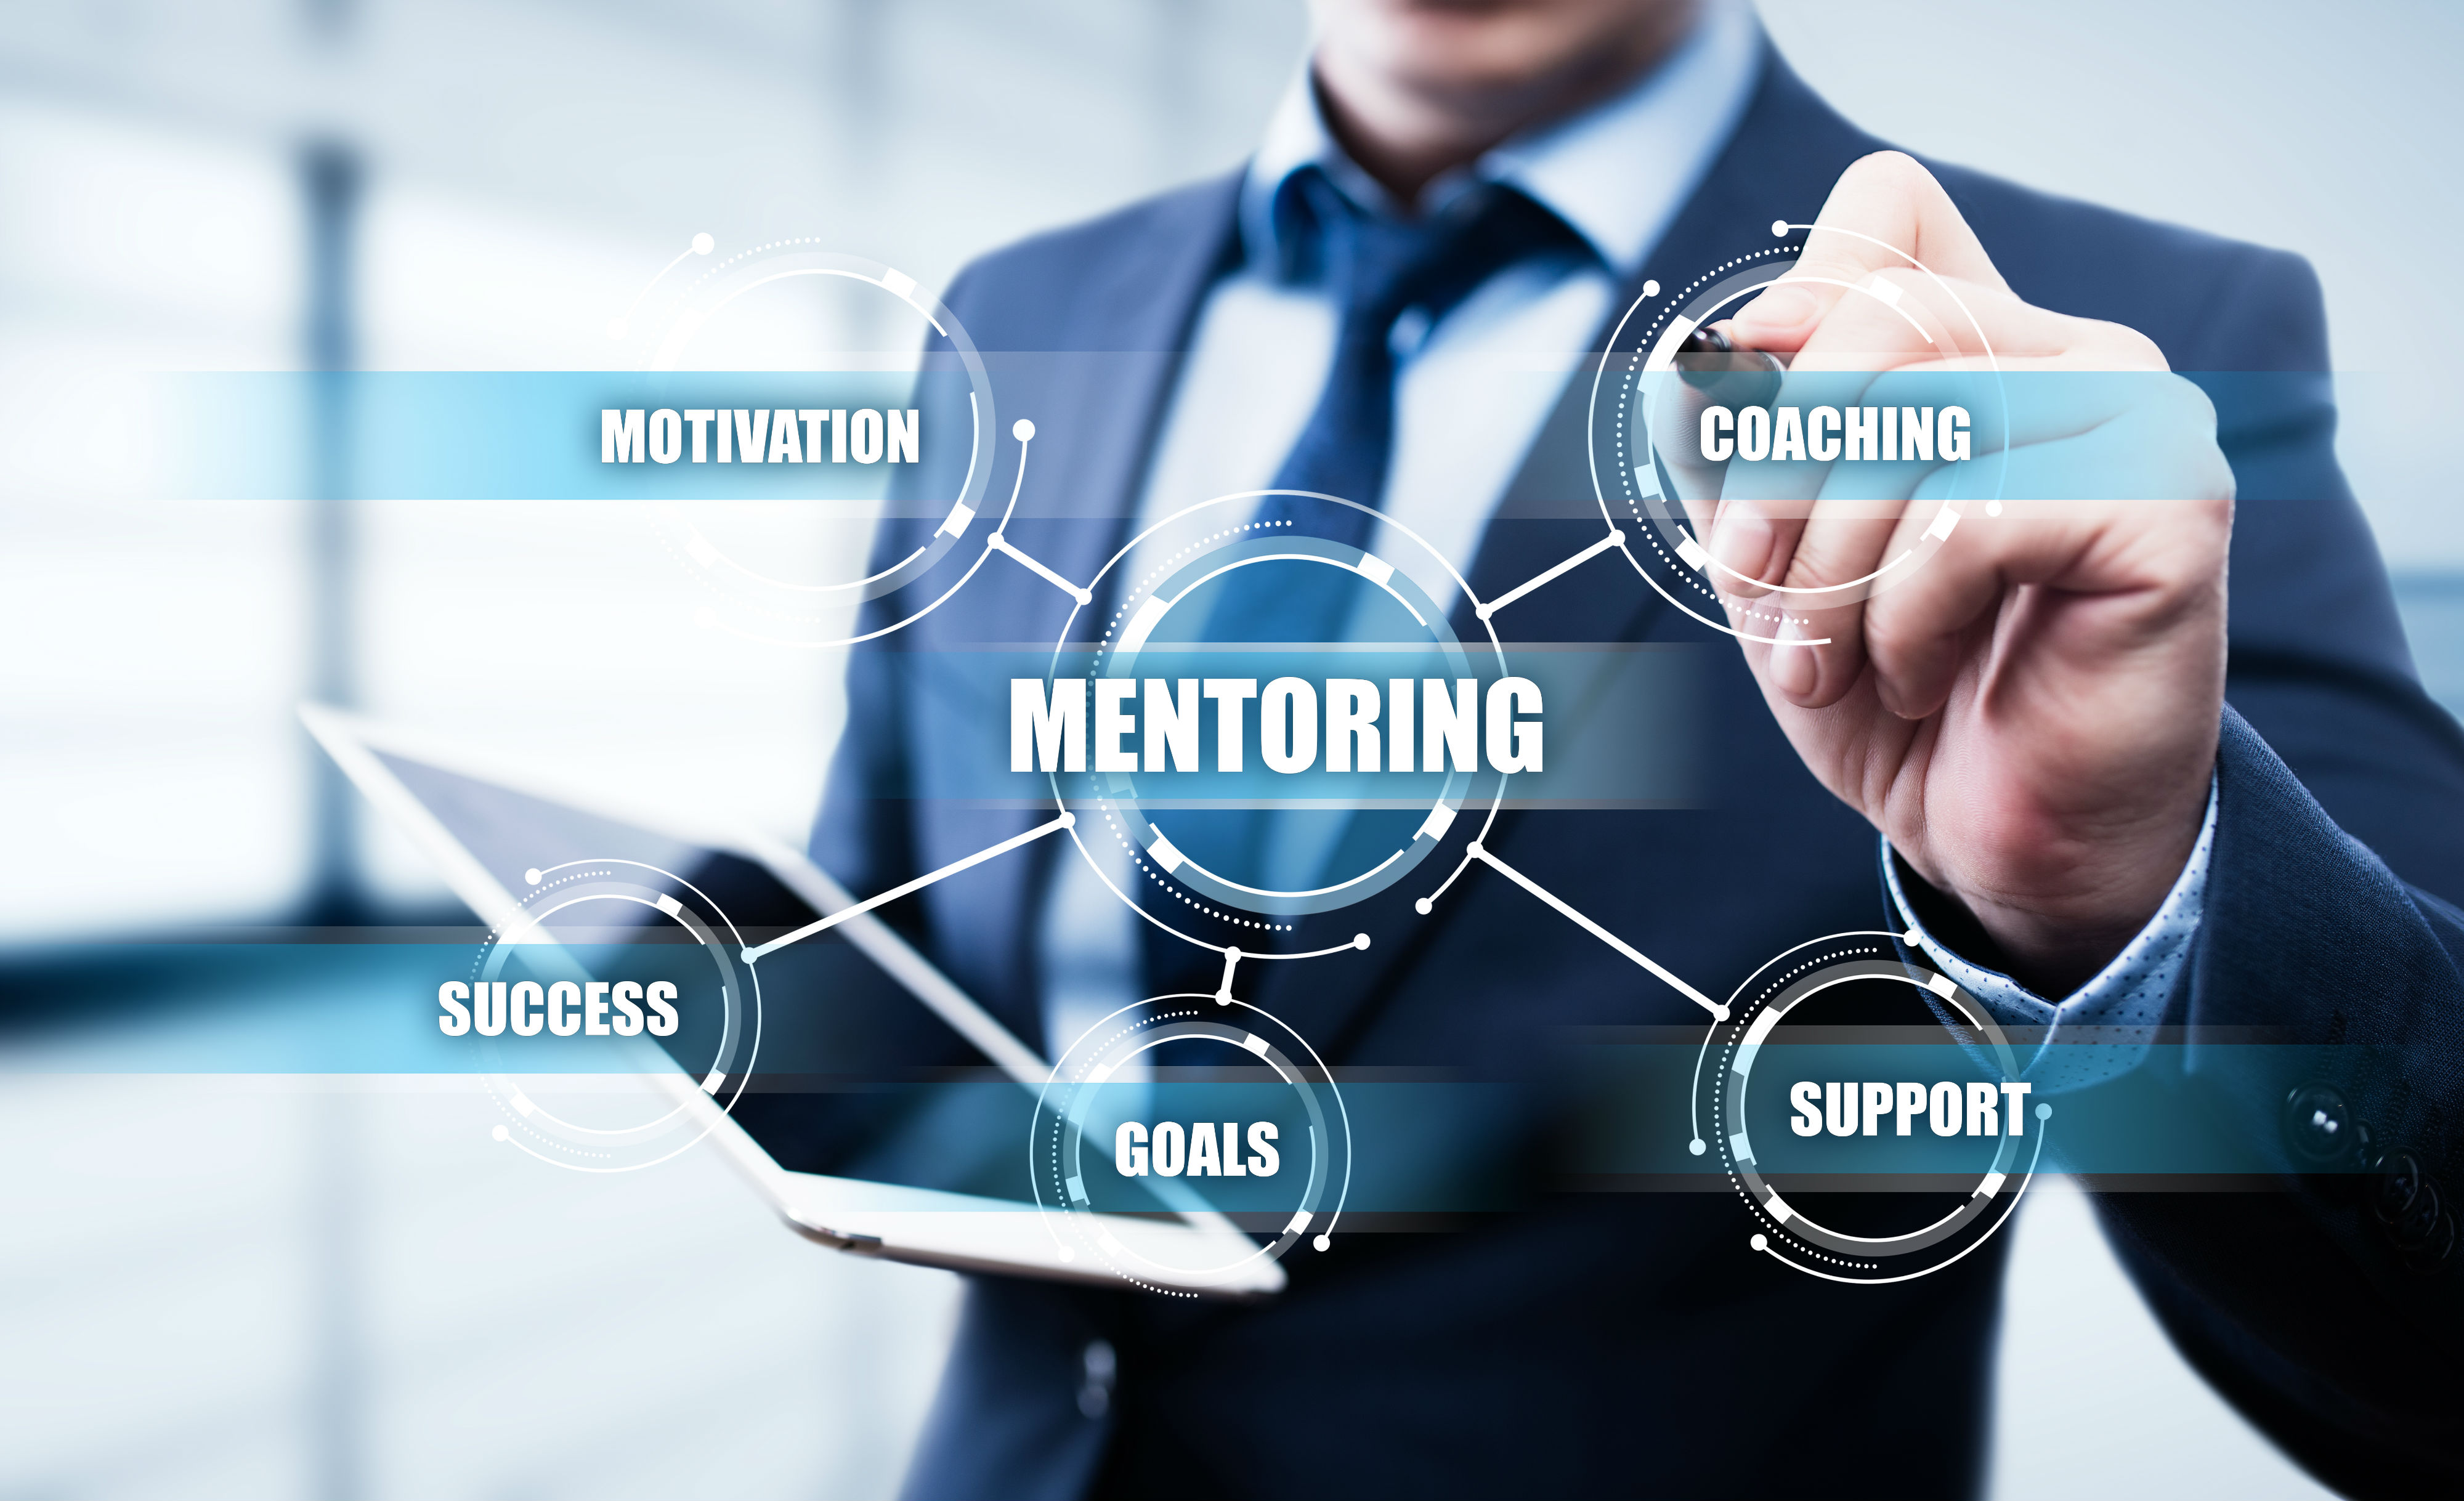 Business Coach or Business Mentor